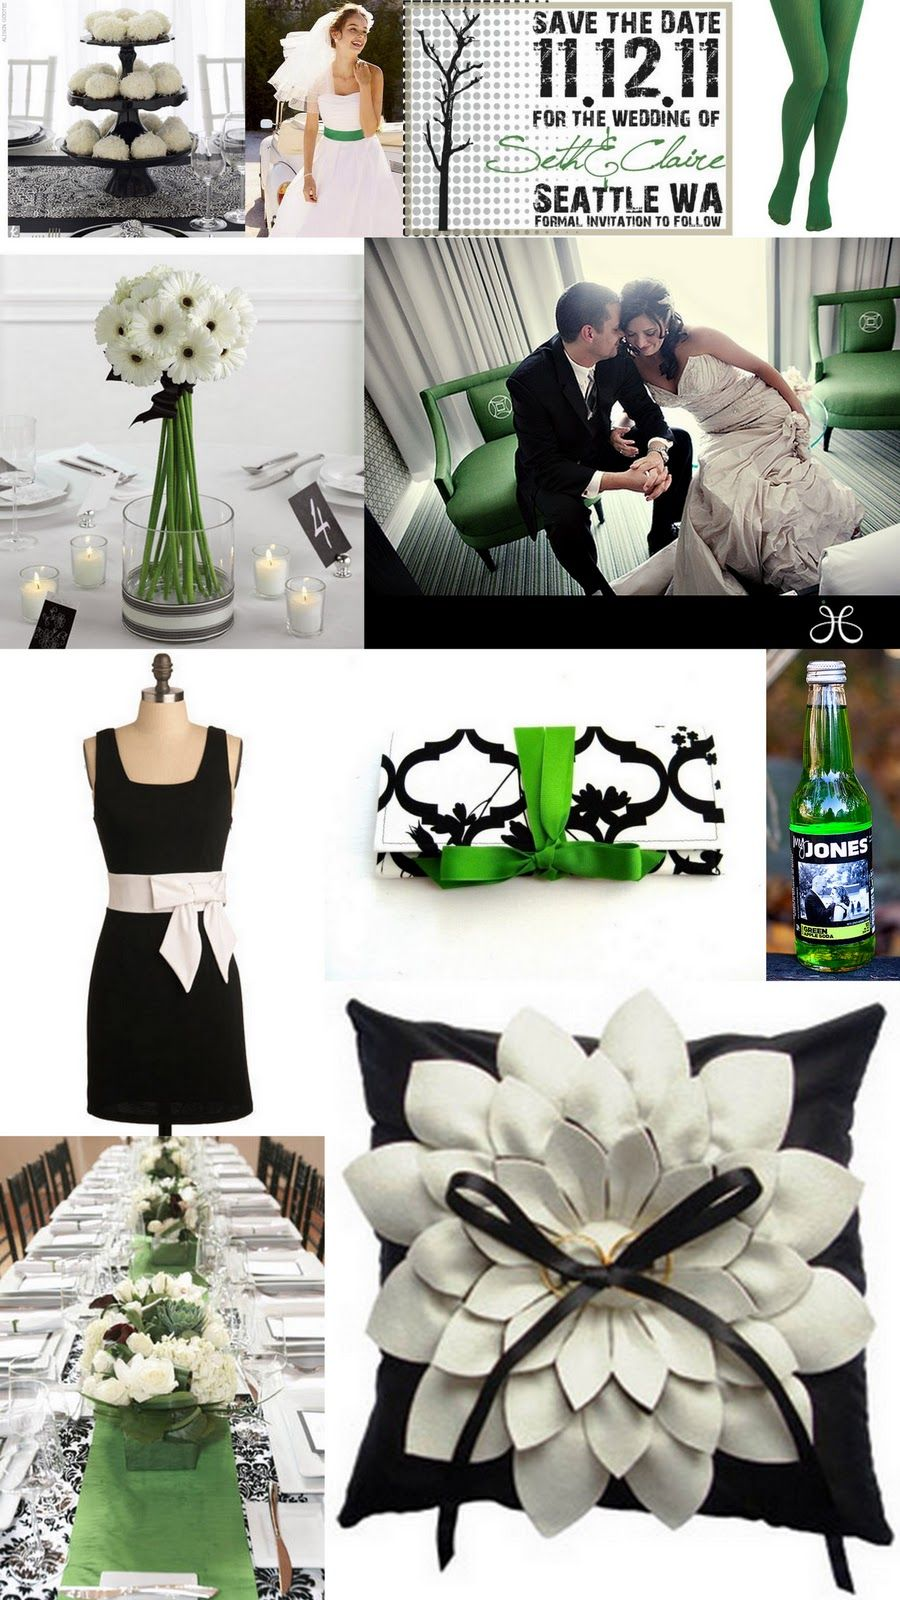 Green & Black Wedding Decorations | Looking for Green/Black wedding ...